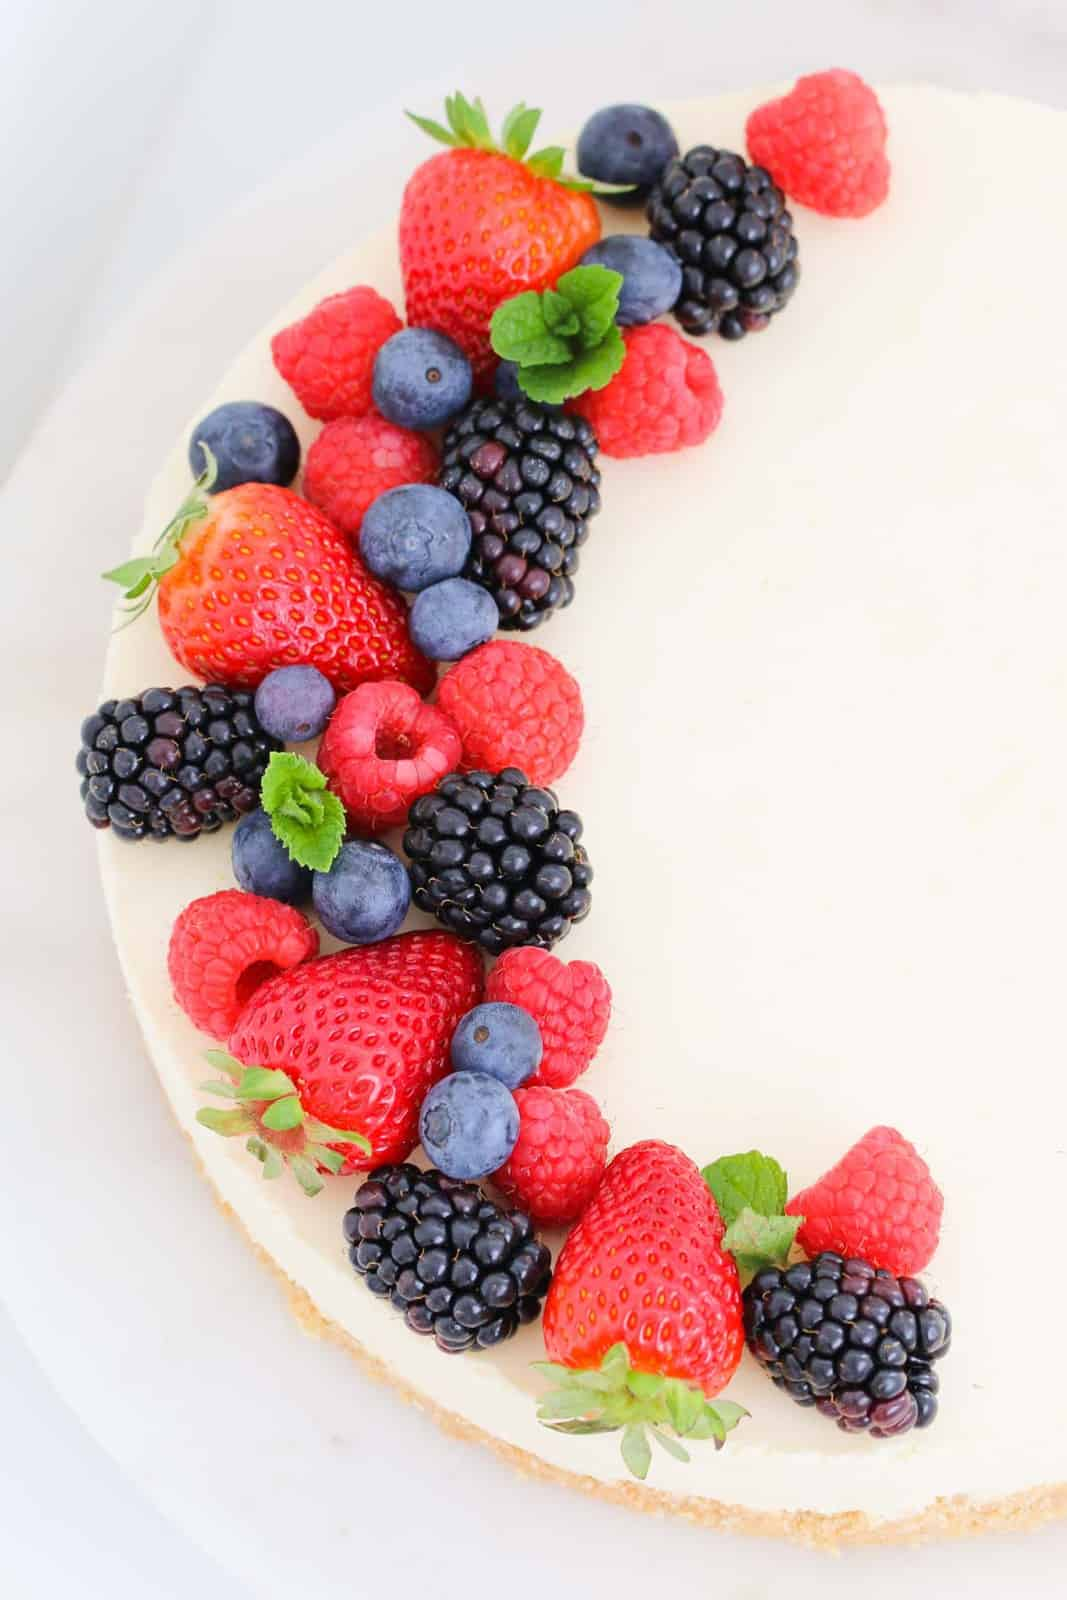 An overhead shot of fresh berries on top of a lemon cheesecake.